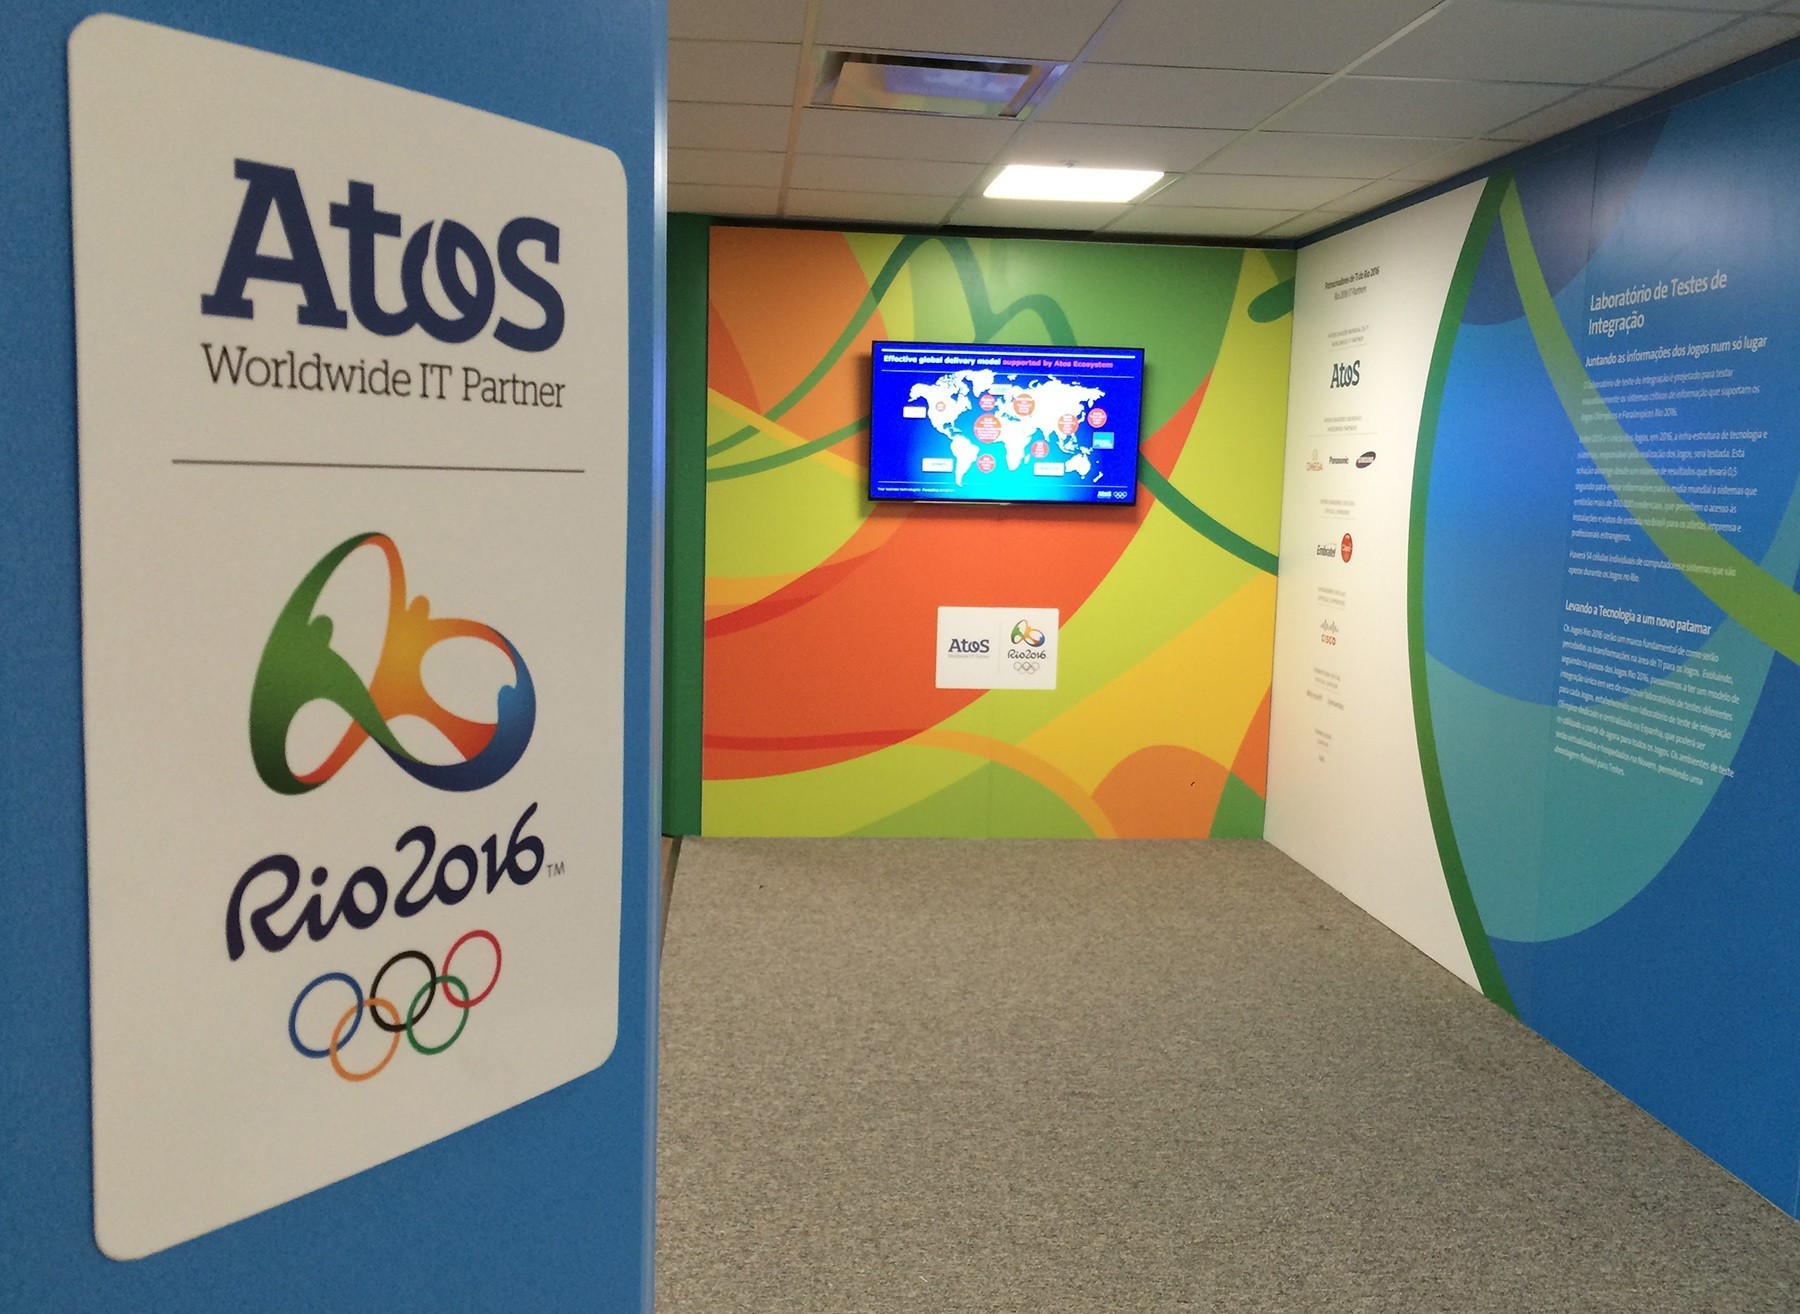 Atos opens Rio 2016 IT integration testing lab